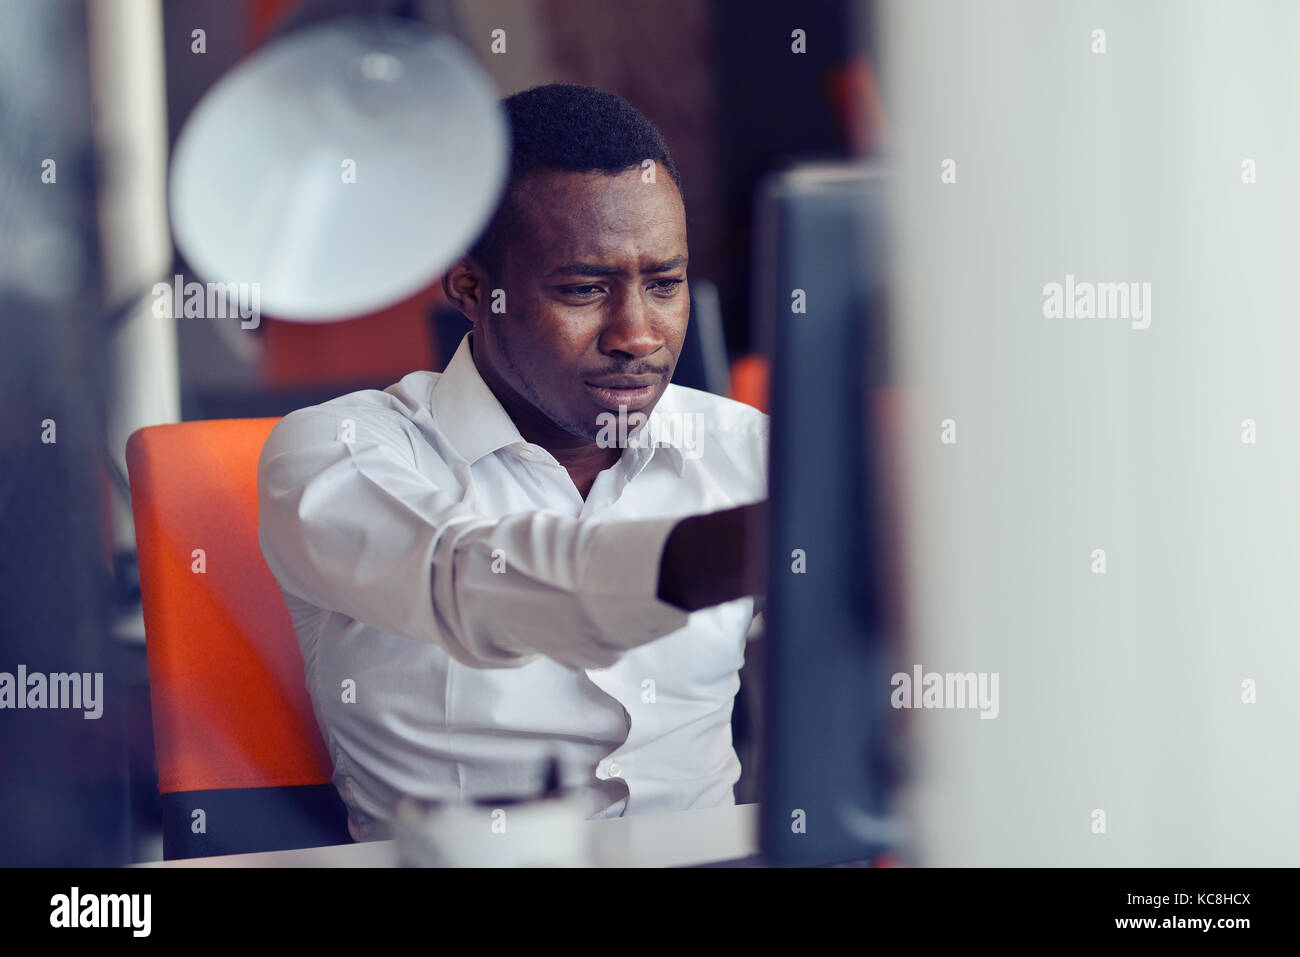 Disappointed African businessman is dazed and confused by a mistake in official documents. - Stock Image